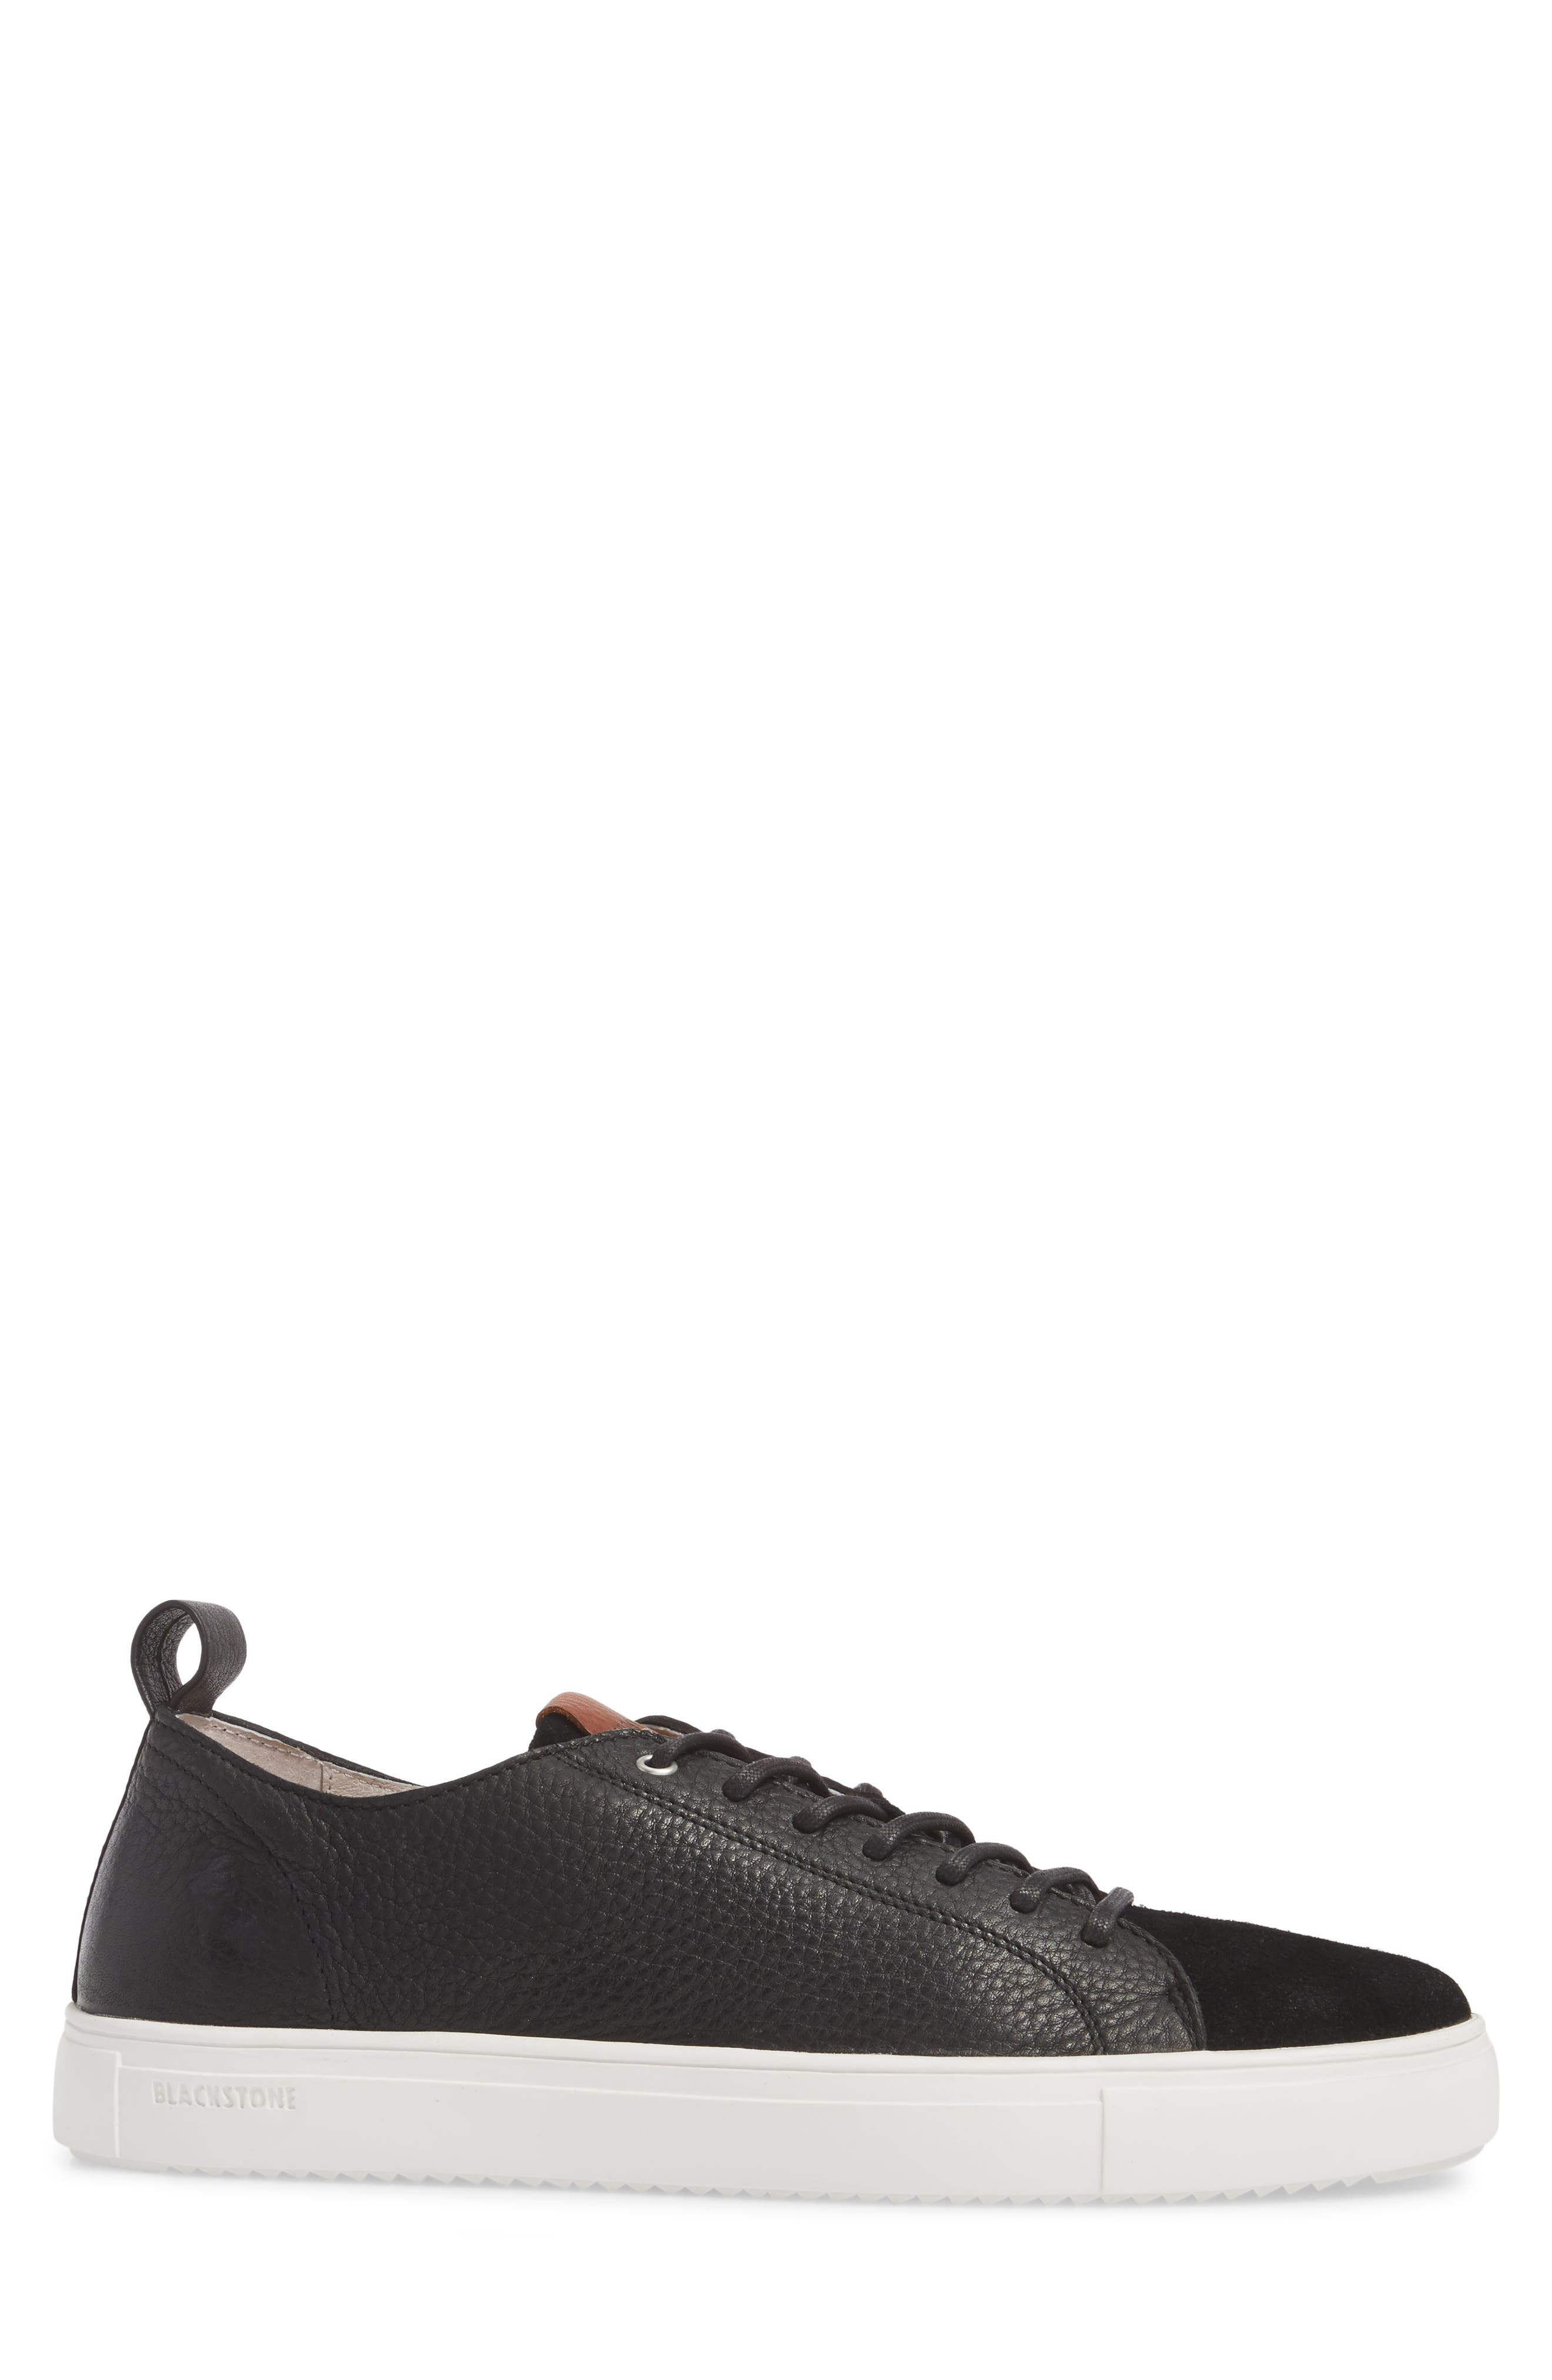 PM46 Low Top Sneaker,                             Alternate thumbnail 3, color,                             BLACK LEATHER